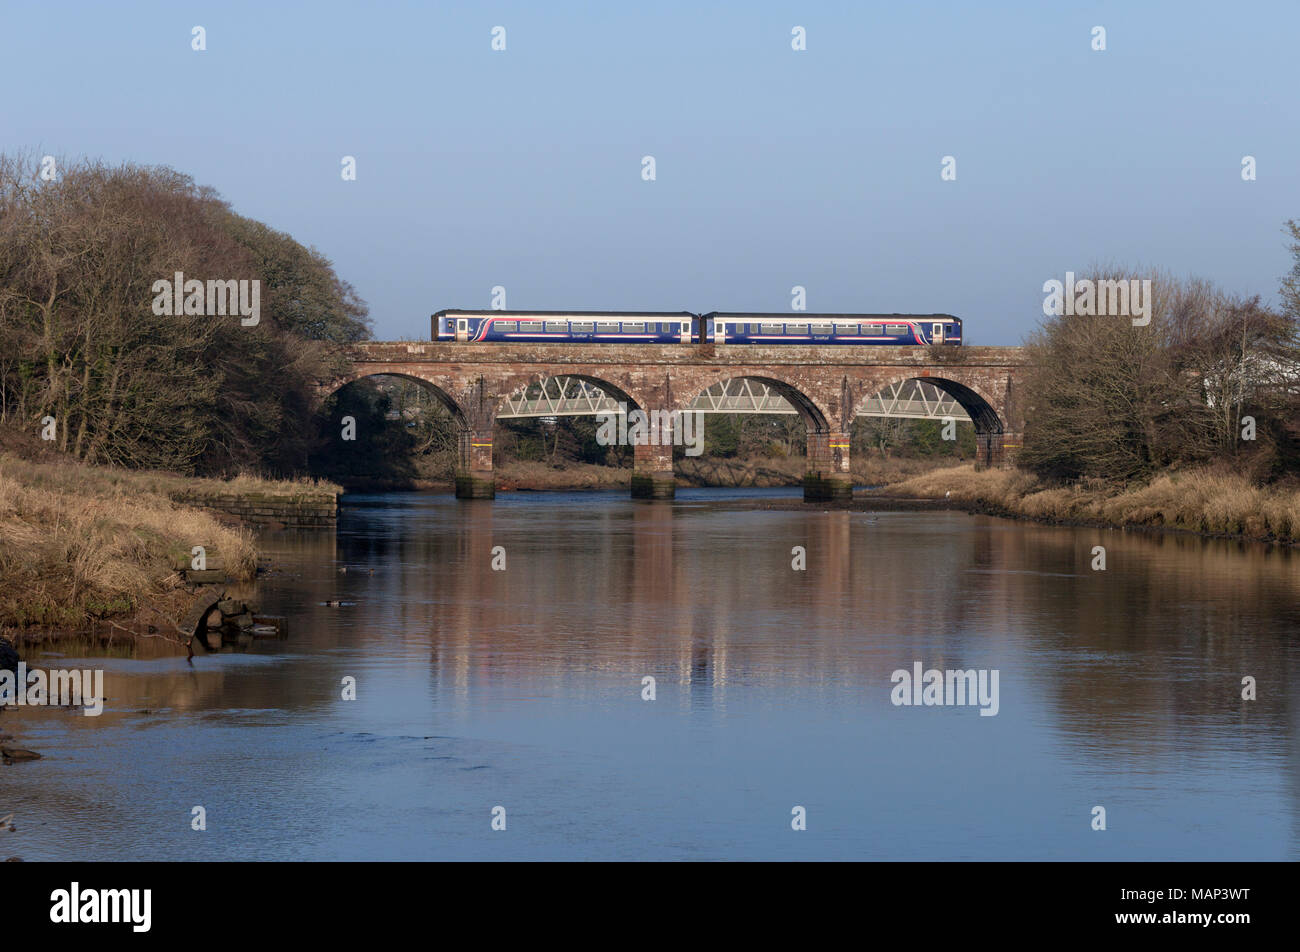 Scotrail class 156 sprinter train crosses the viaduct at  Annan (River Annan, South of Dumfries) reflected in the river below - Stock Image